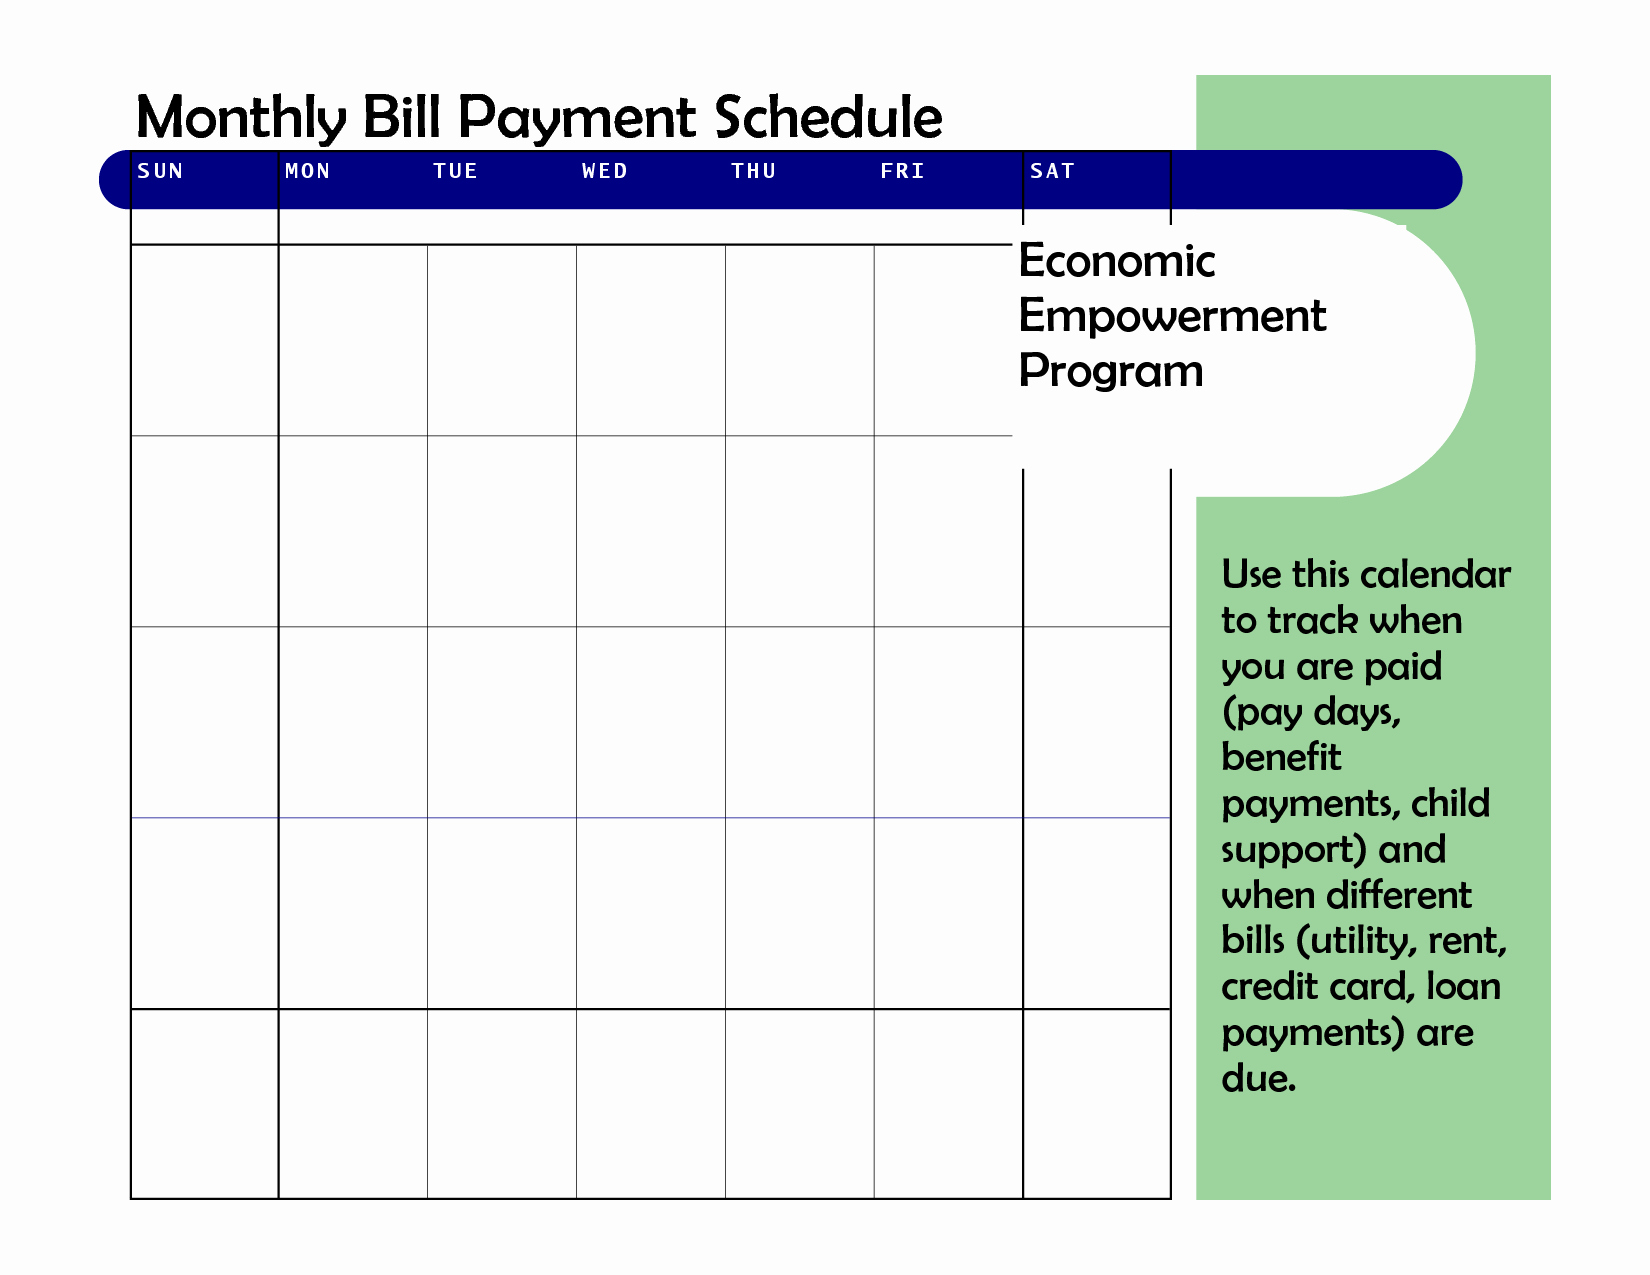 Monthly Bill Calendar Template Best Of Monthly Based Bill Payment Schedule Template Vatansun